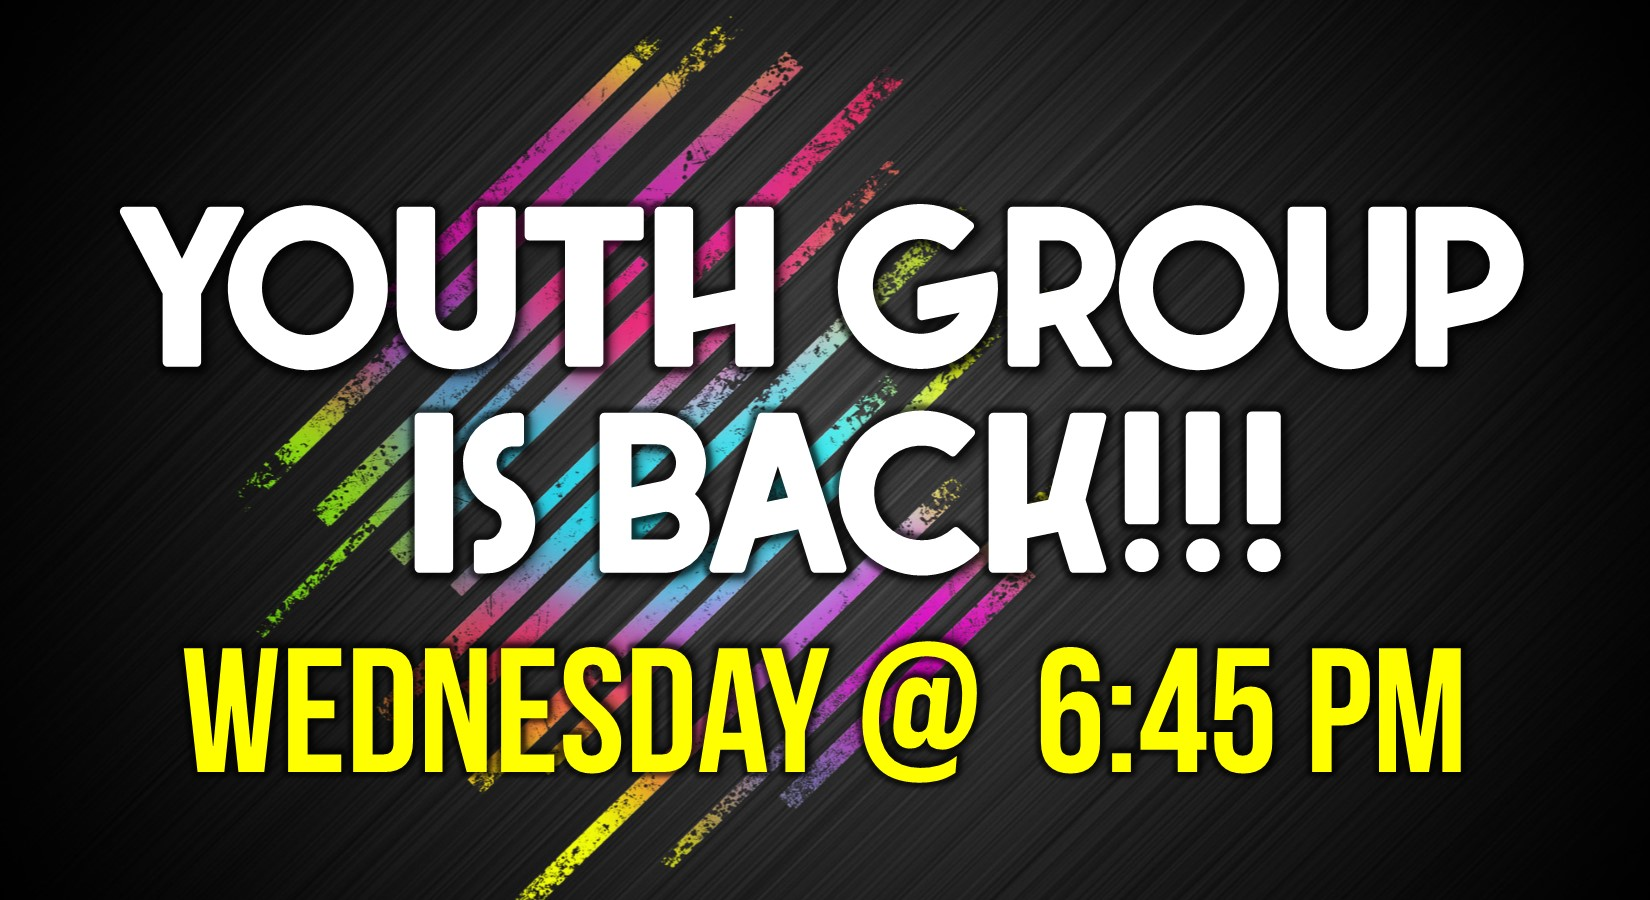 9-16-20 Youth Group is Back